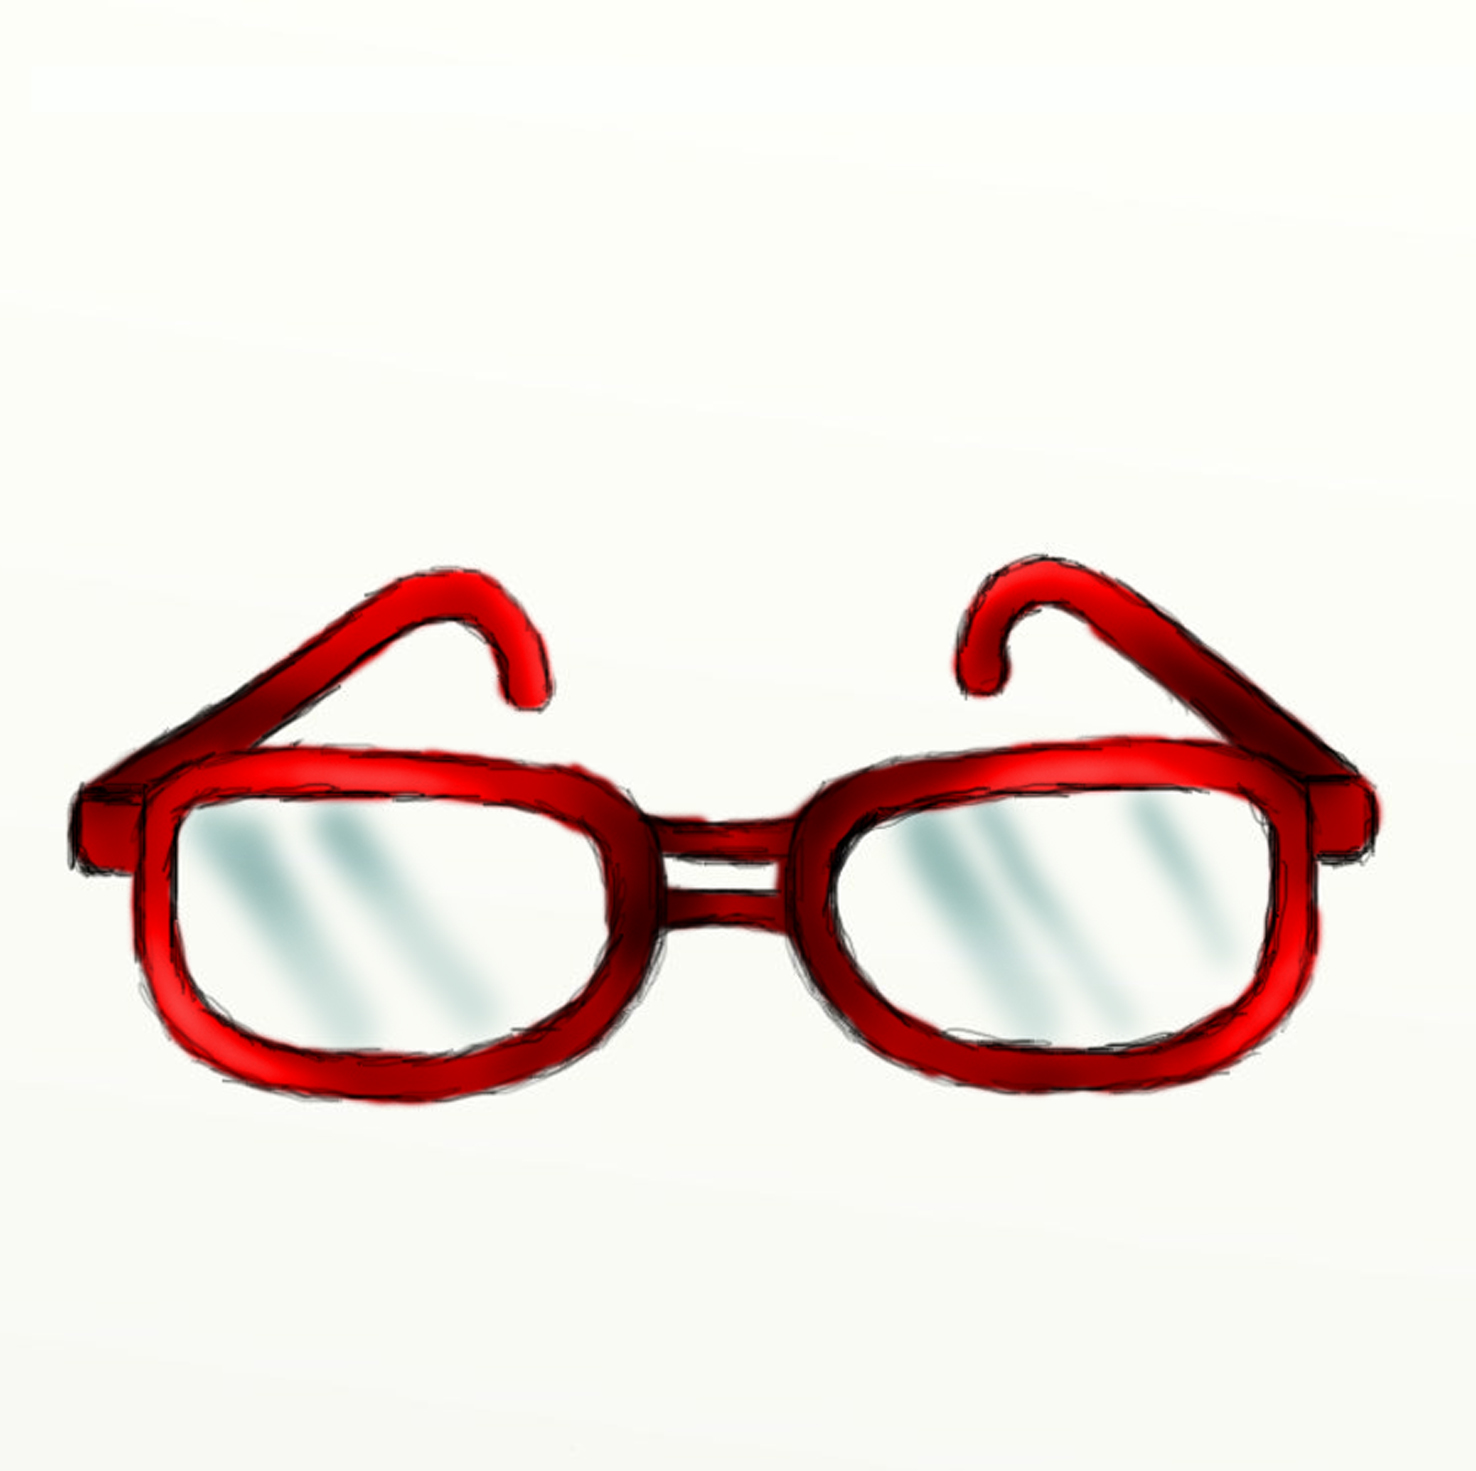 Reading Glasses Cartoon - Free Clipart Images